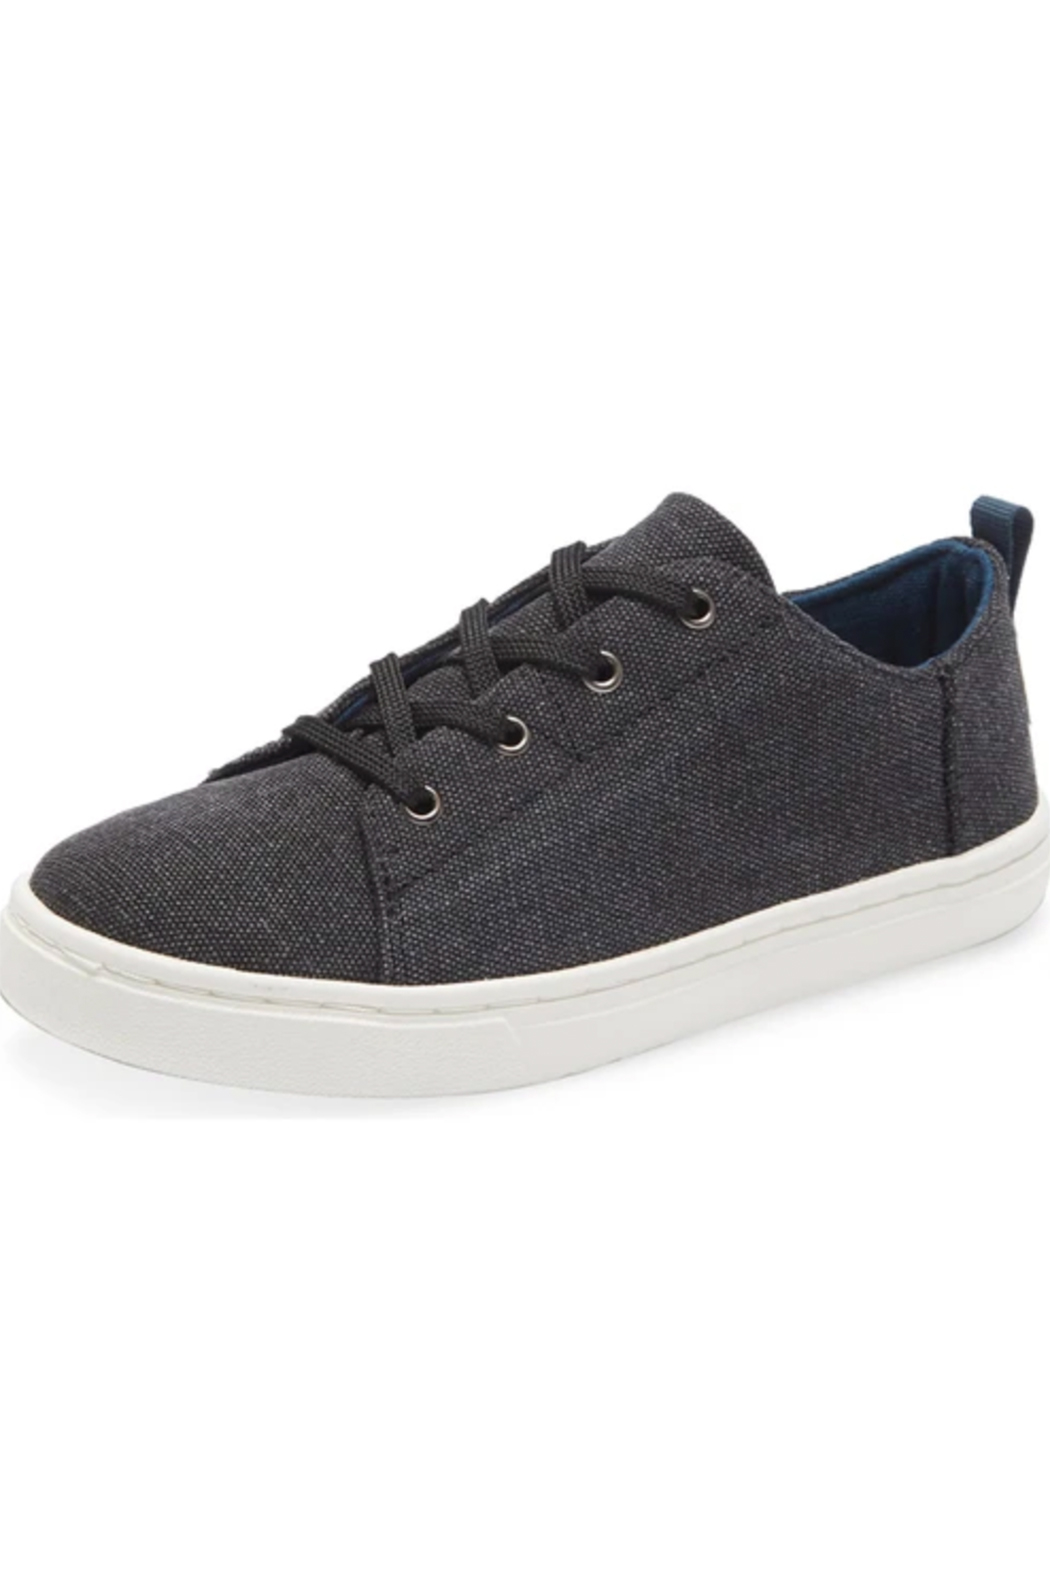 TOMS Youth Lenny Black Washed Canvas - Main Image